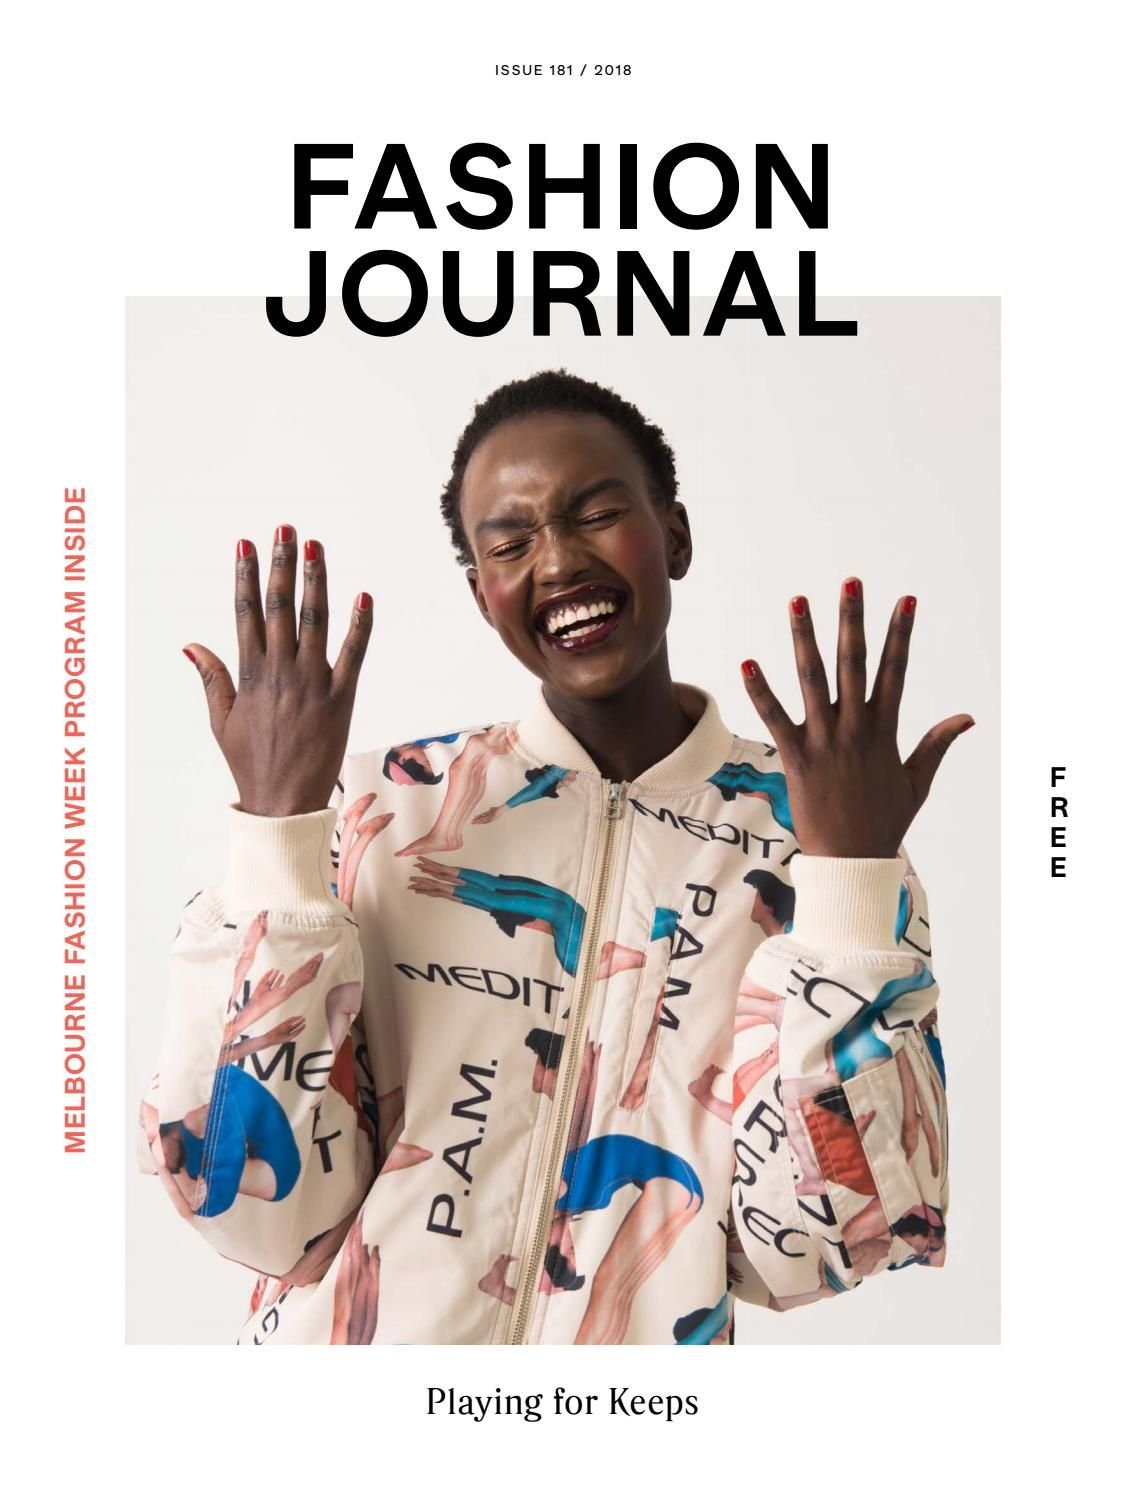 Fashion Journal 181 With Images Fashion Journals Fashion Poster Design Fashion Editorial Layout